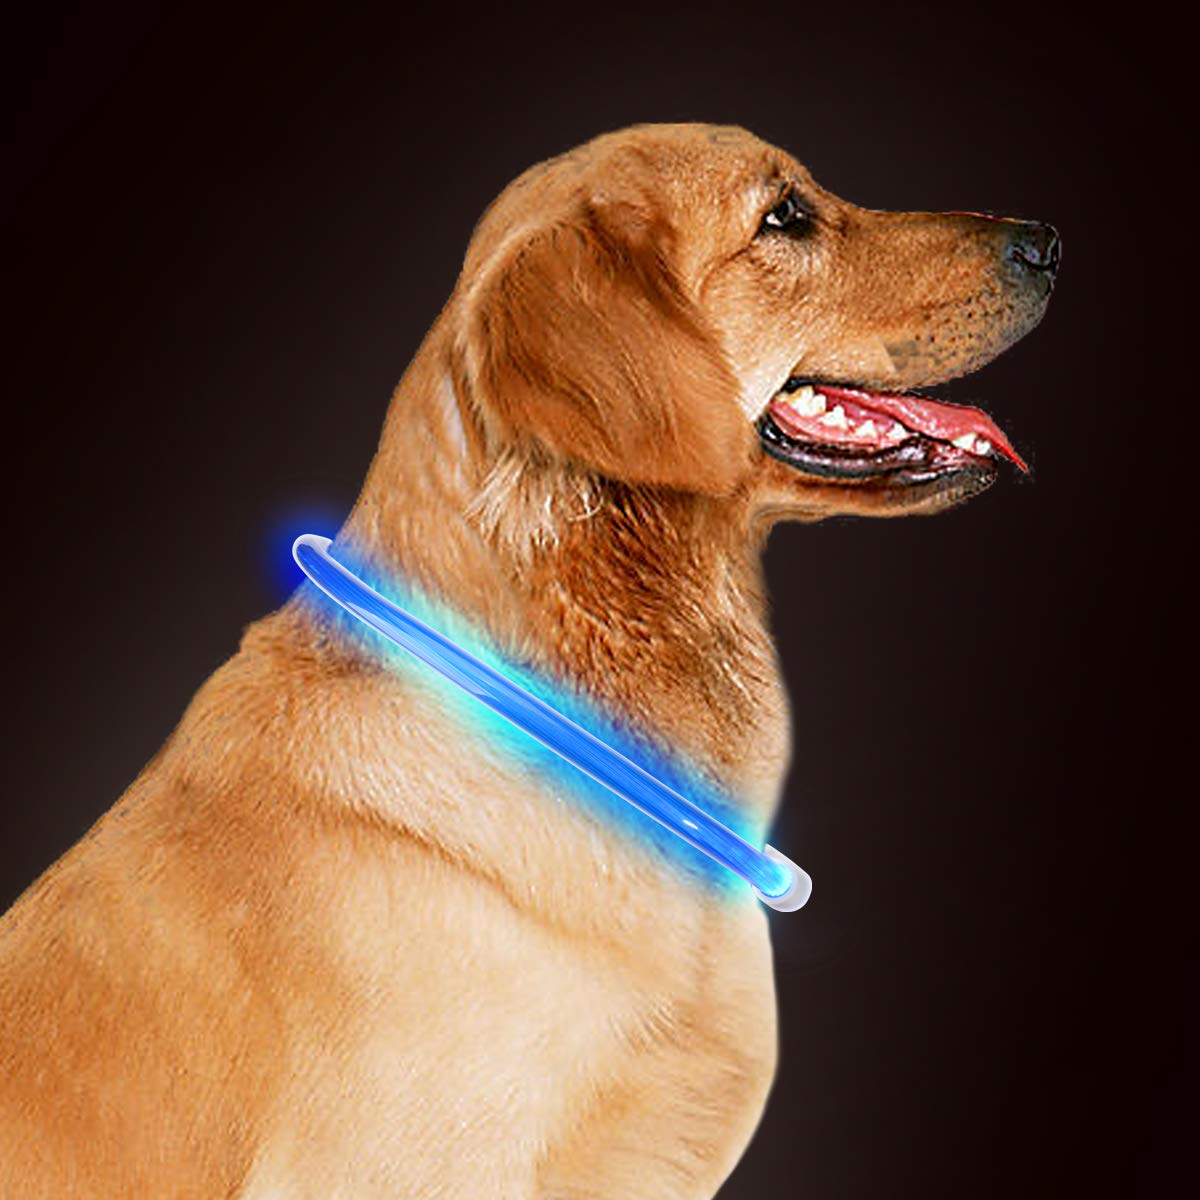 takyu LED Dog Collar, High Visibility Flashing LED Dog Safety Collar Rechargeable Adjustable Size Fit for All Dog, Cat and Pets